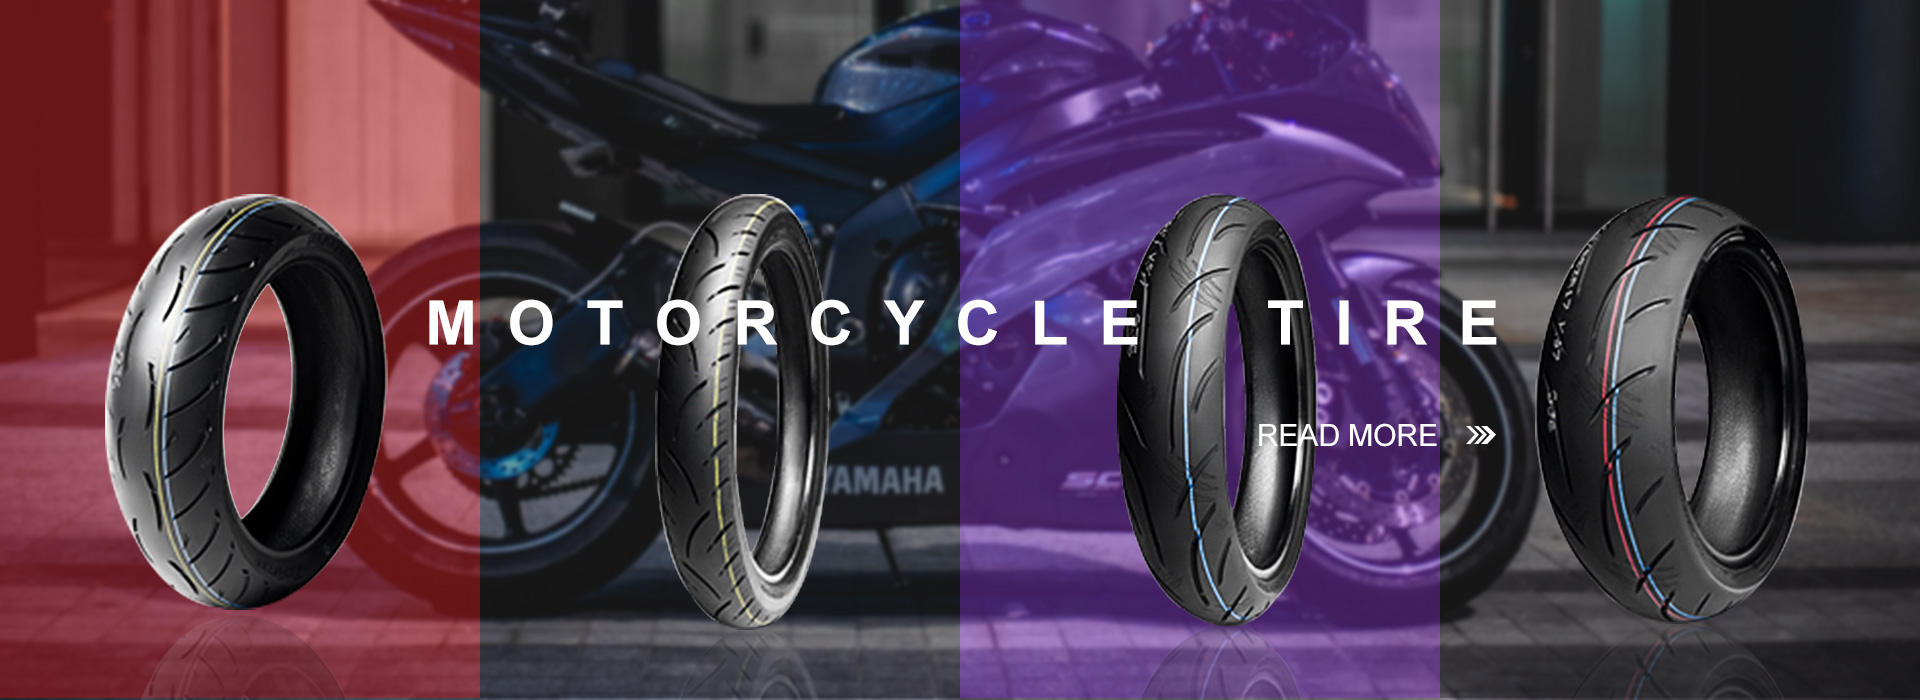 MOTORCYCLE TIREMOTORCYCLE TIRE